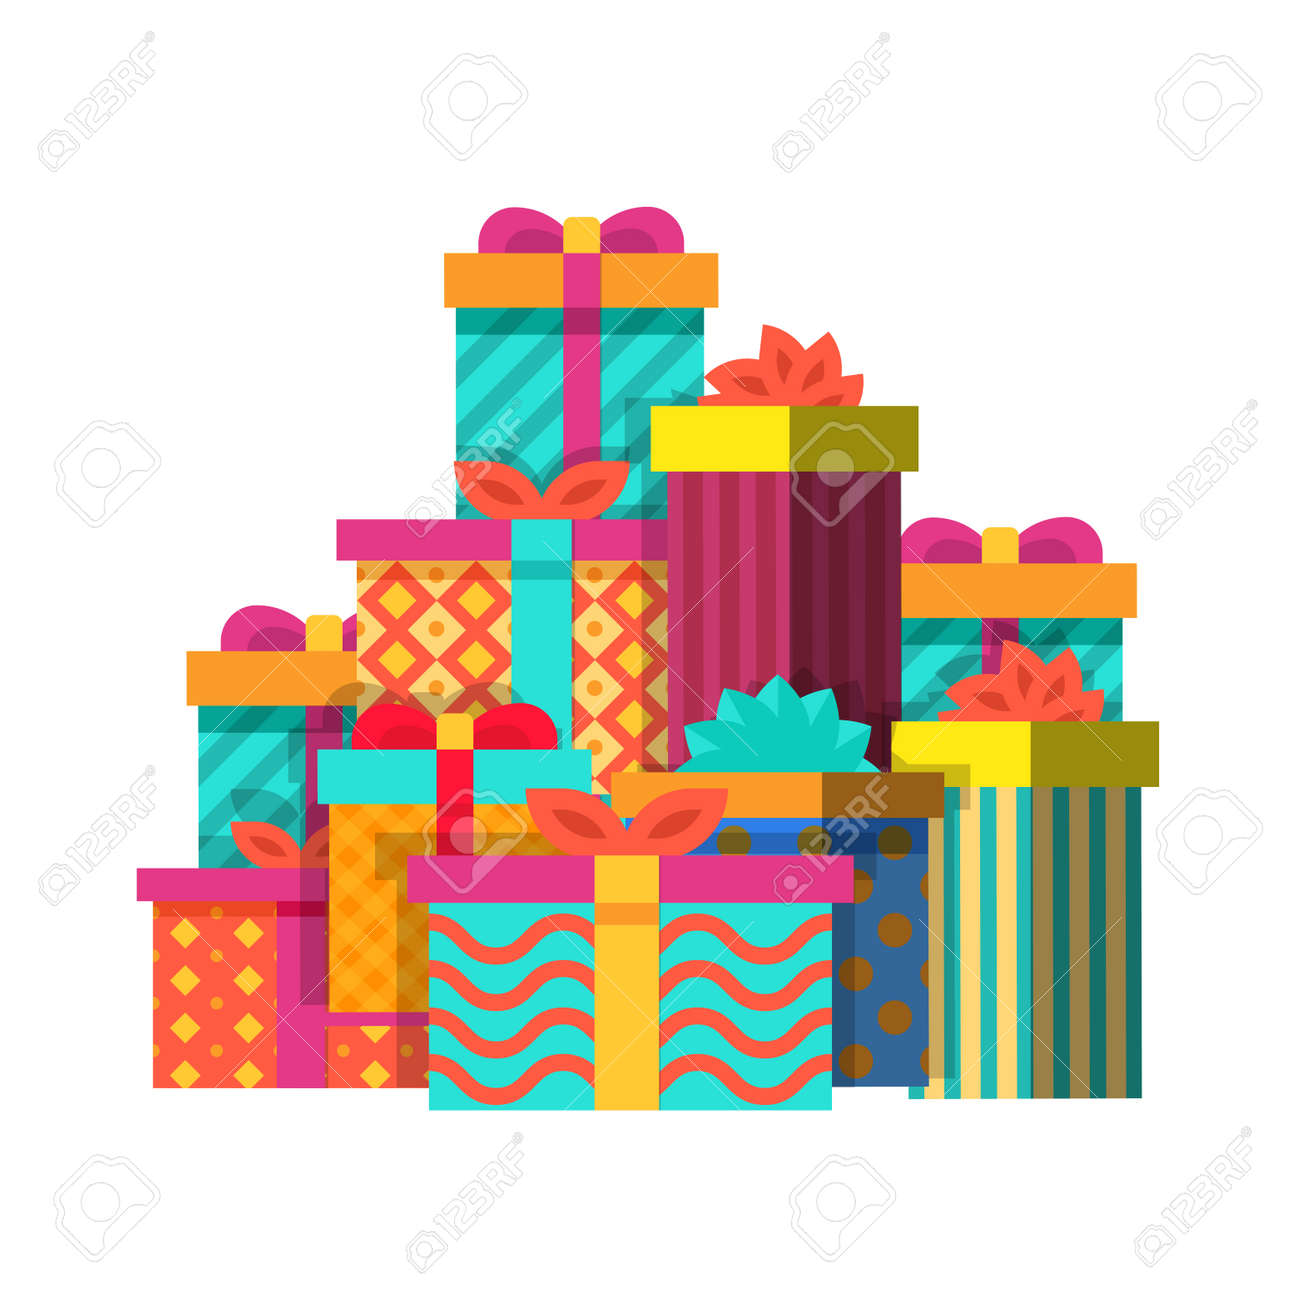 Big Pile Of Colorful Wrapped Christmas And Birthday Gift Boxes